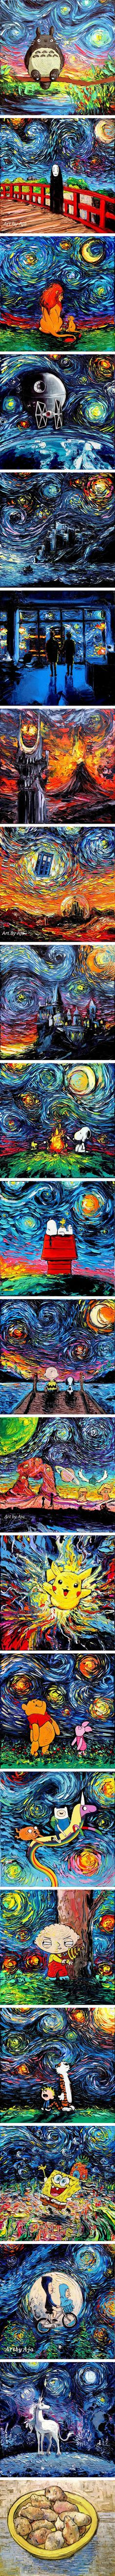 Artist's Painting Gets Mistaken For A Van Gogh, So She Creates Brilliant 'Starry Night' Series